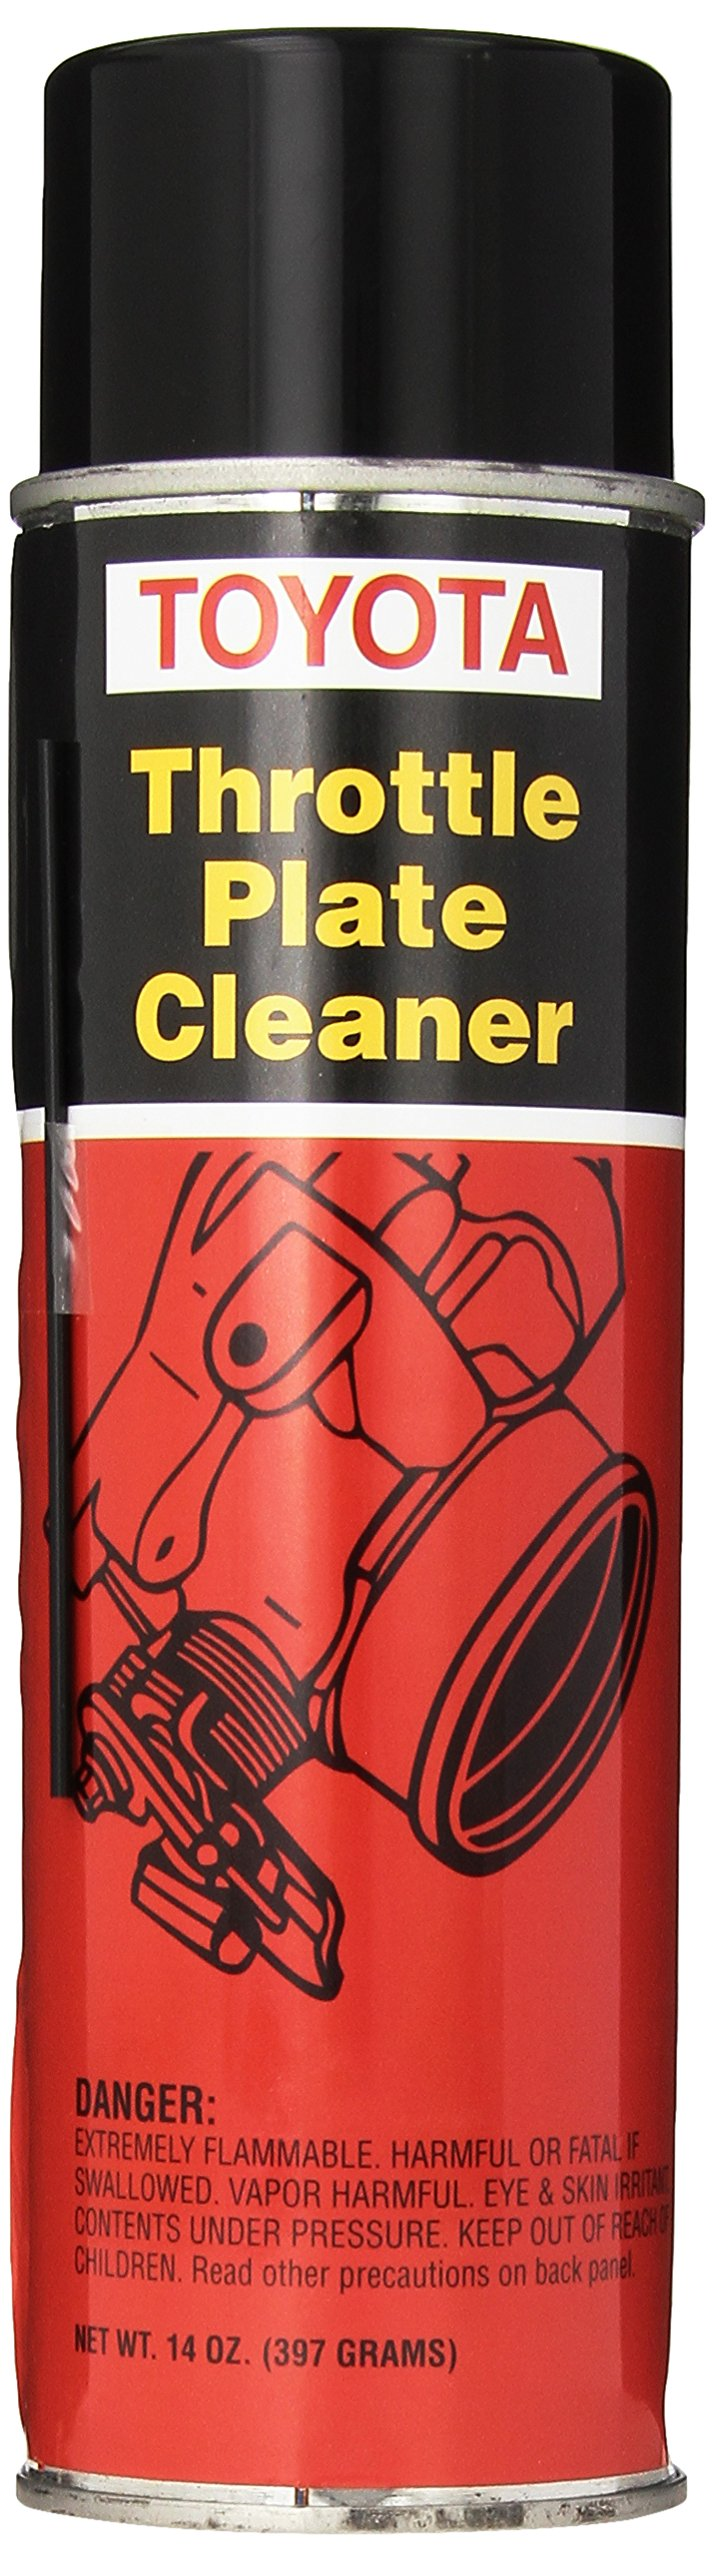 Toyota Genuine Fluid 00289-1TP00 Throttle Plate Cleaner - 14 oz. Can by Toyota